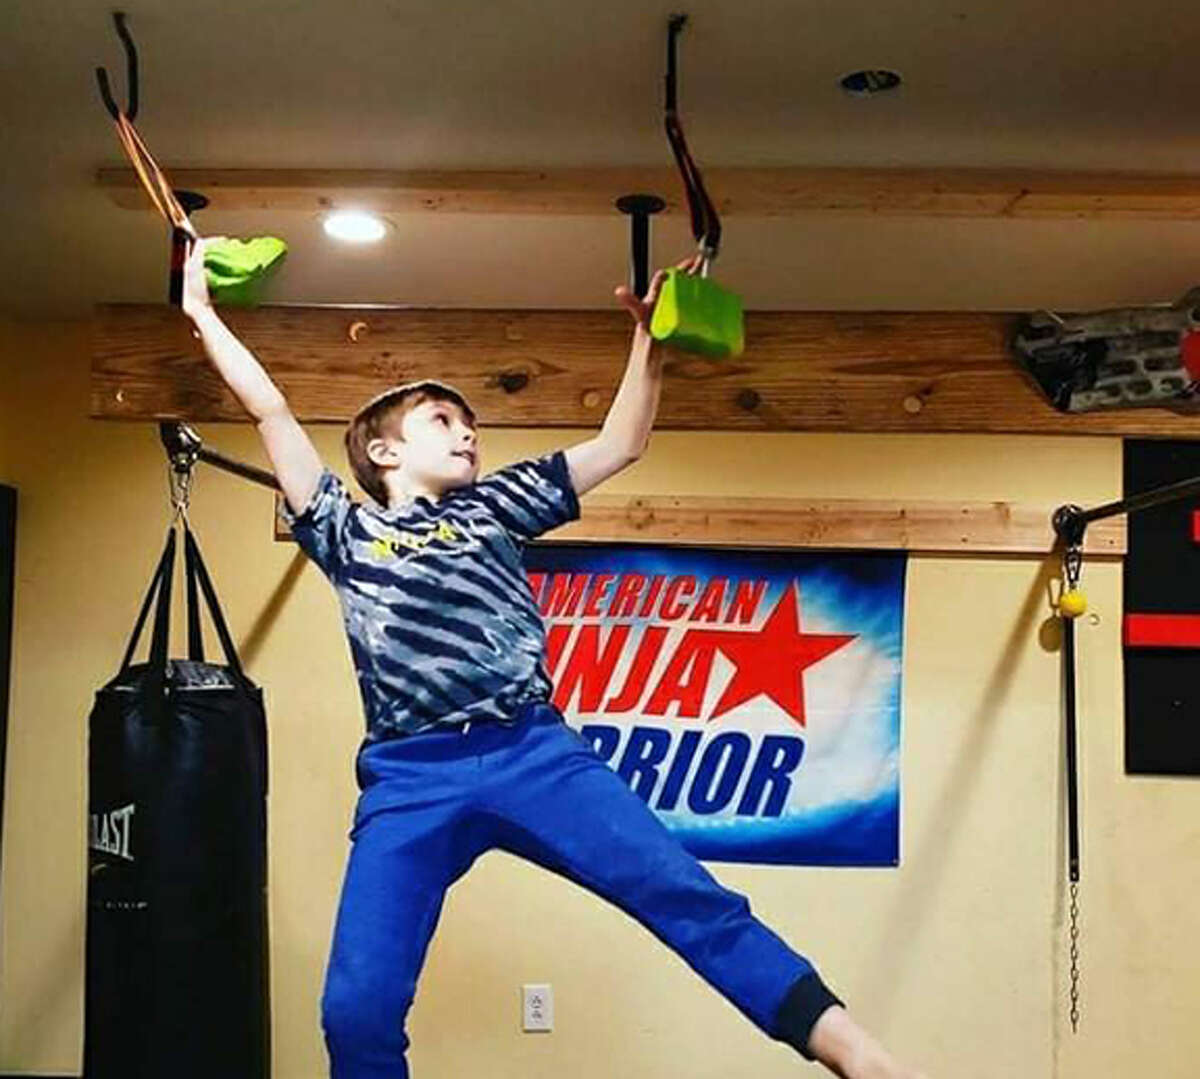 """Colton Davis, 9, of Edwardsville, does ninja training in the basement of his home. He will appear in Thursday's episode of """"American Ninja Warrior Junior,"""" which will be streamed on the Peacock network."""